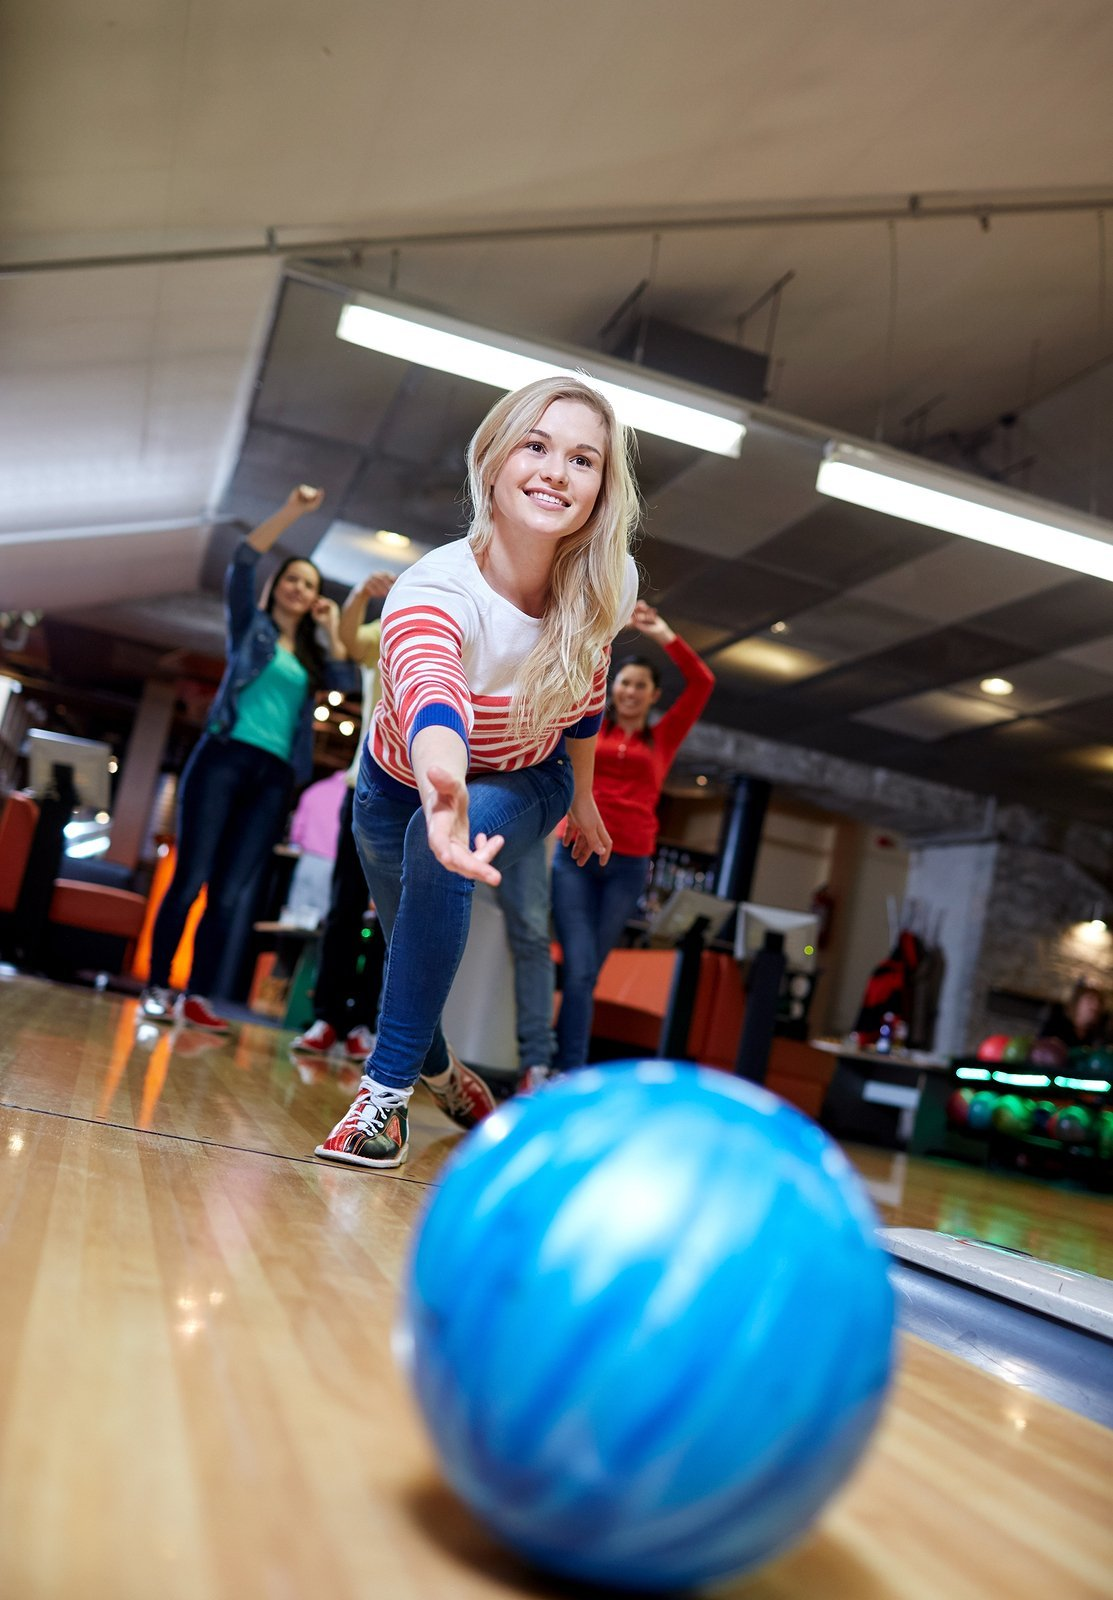 Flipping a Switch for Guest Satisfaction<br> The Lighting Picture at Bowling Centers